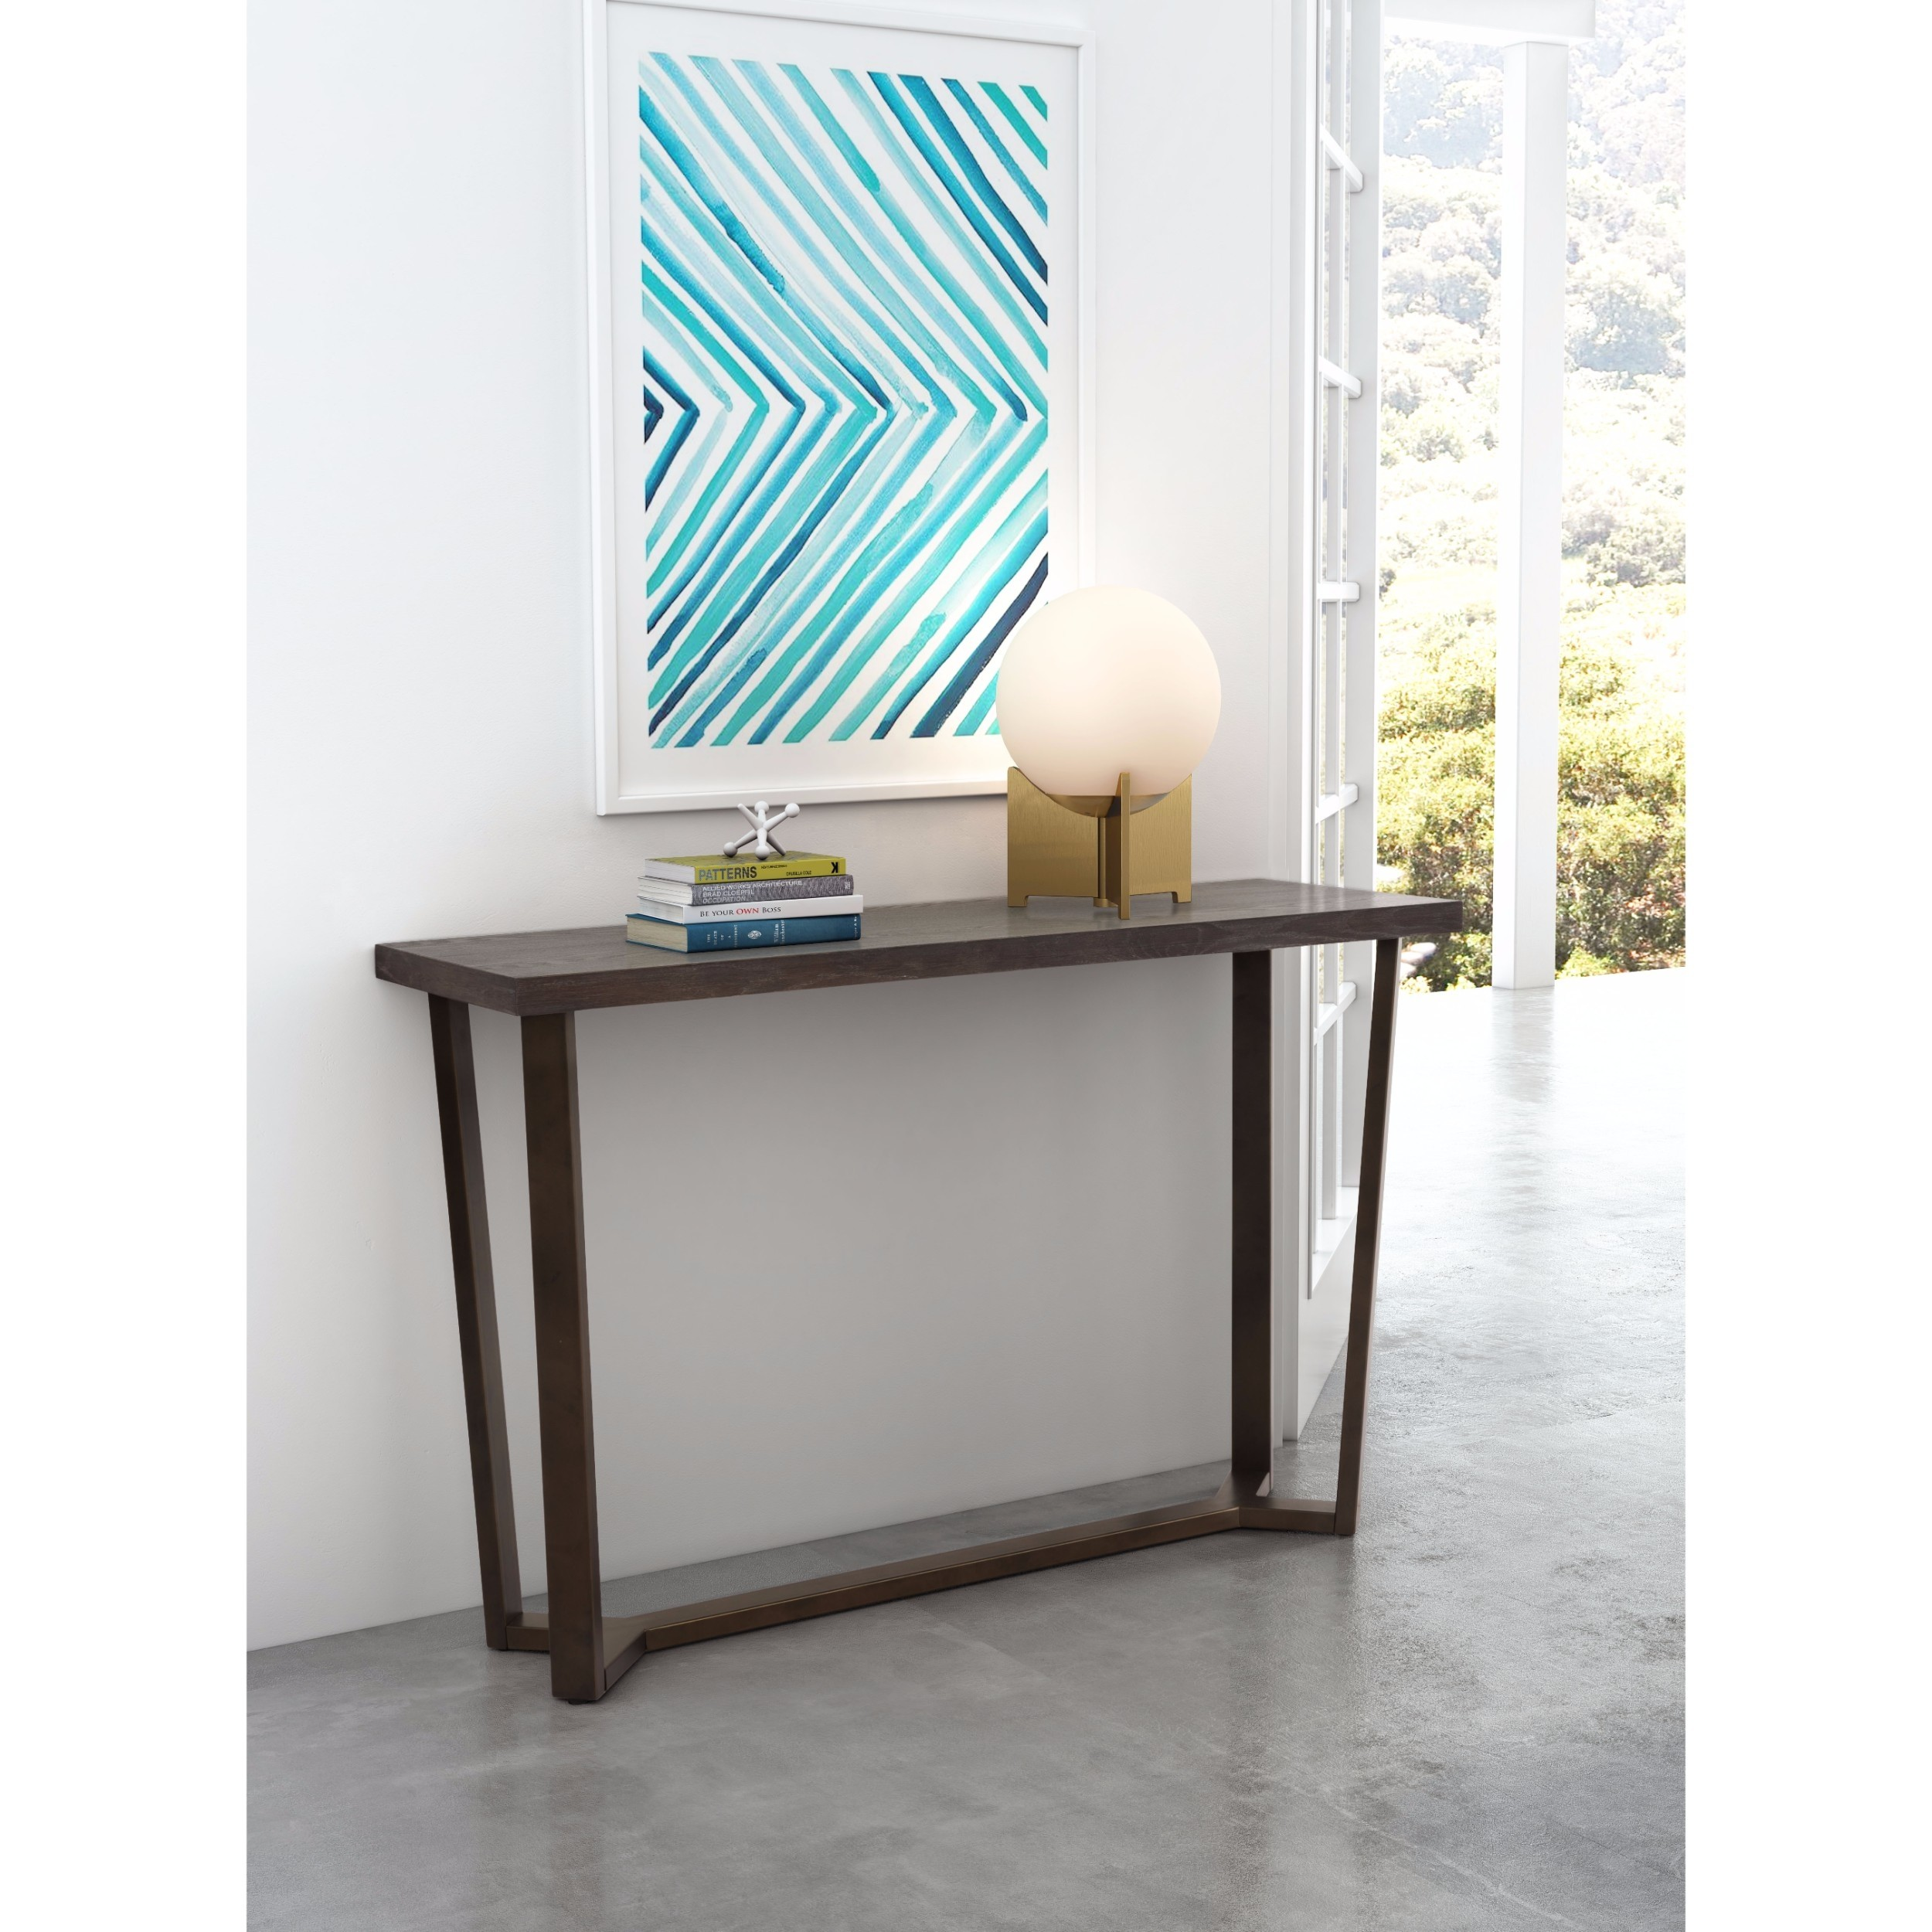 brooklyn console table lifestyle accent furniture tables diy counter height barn door room divider living chest drawers glass top small adirondack chairs target chaise lounge